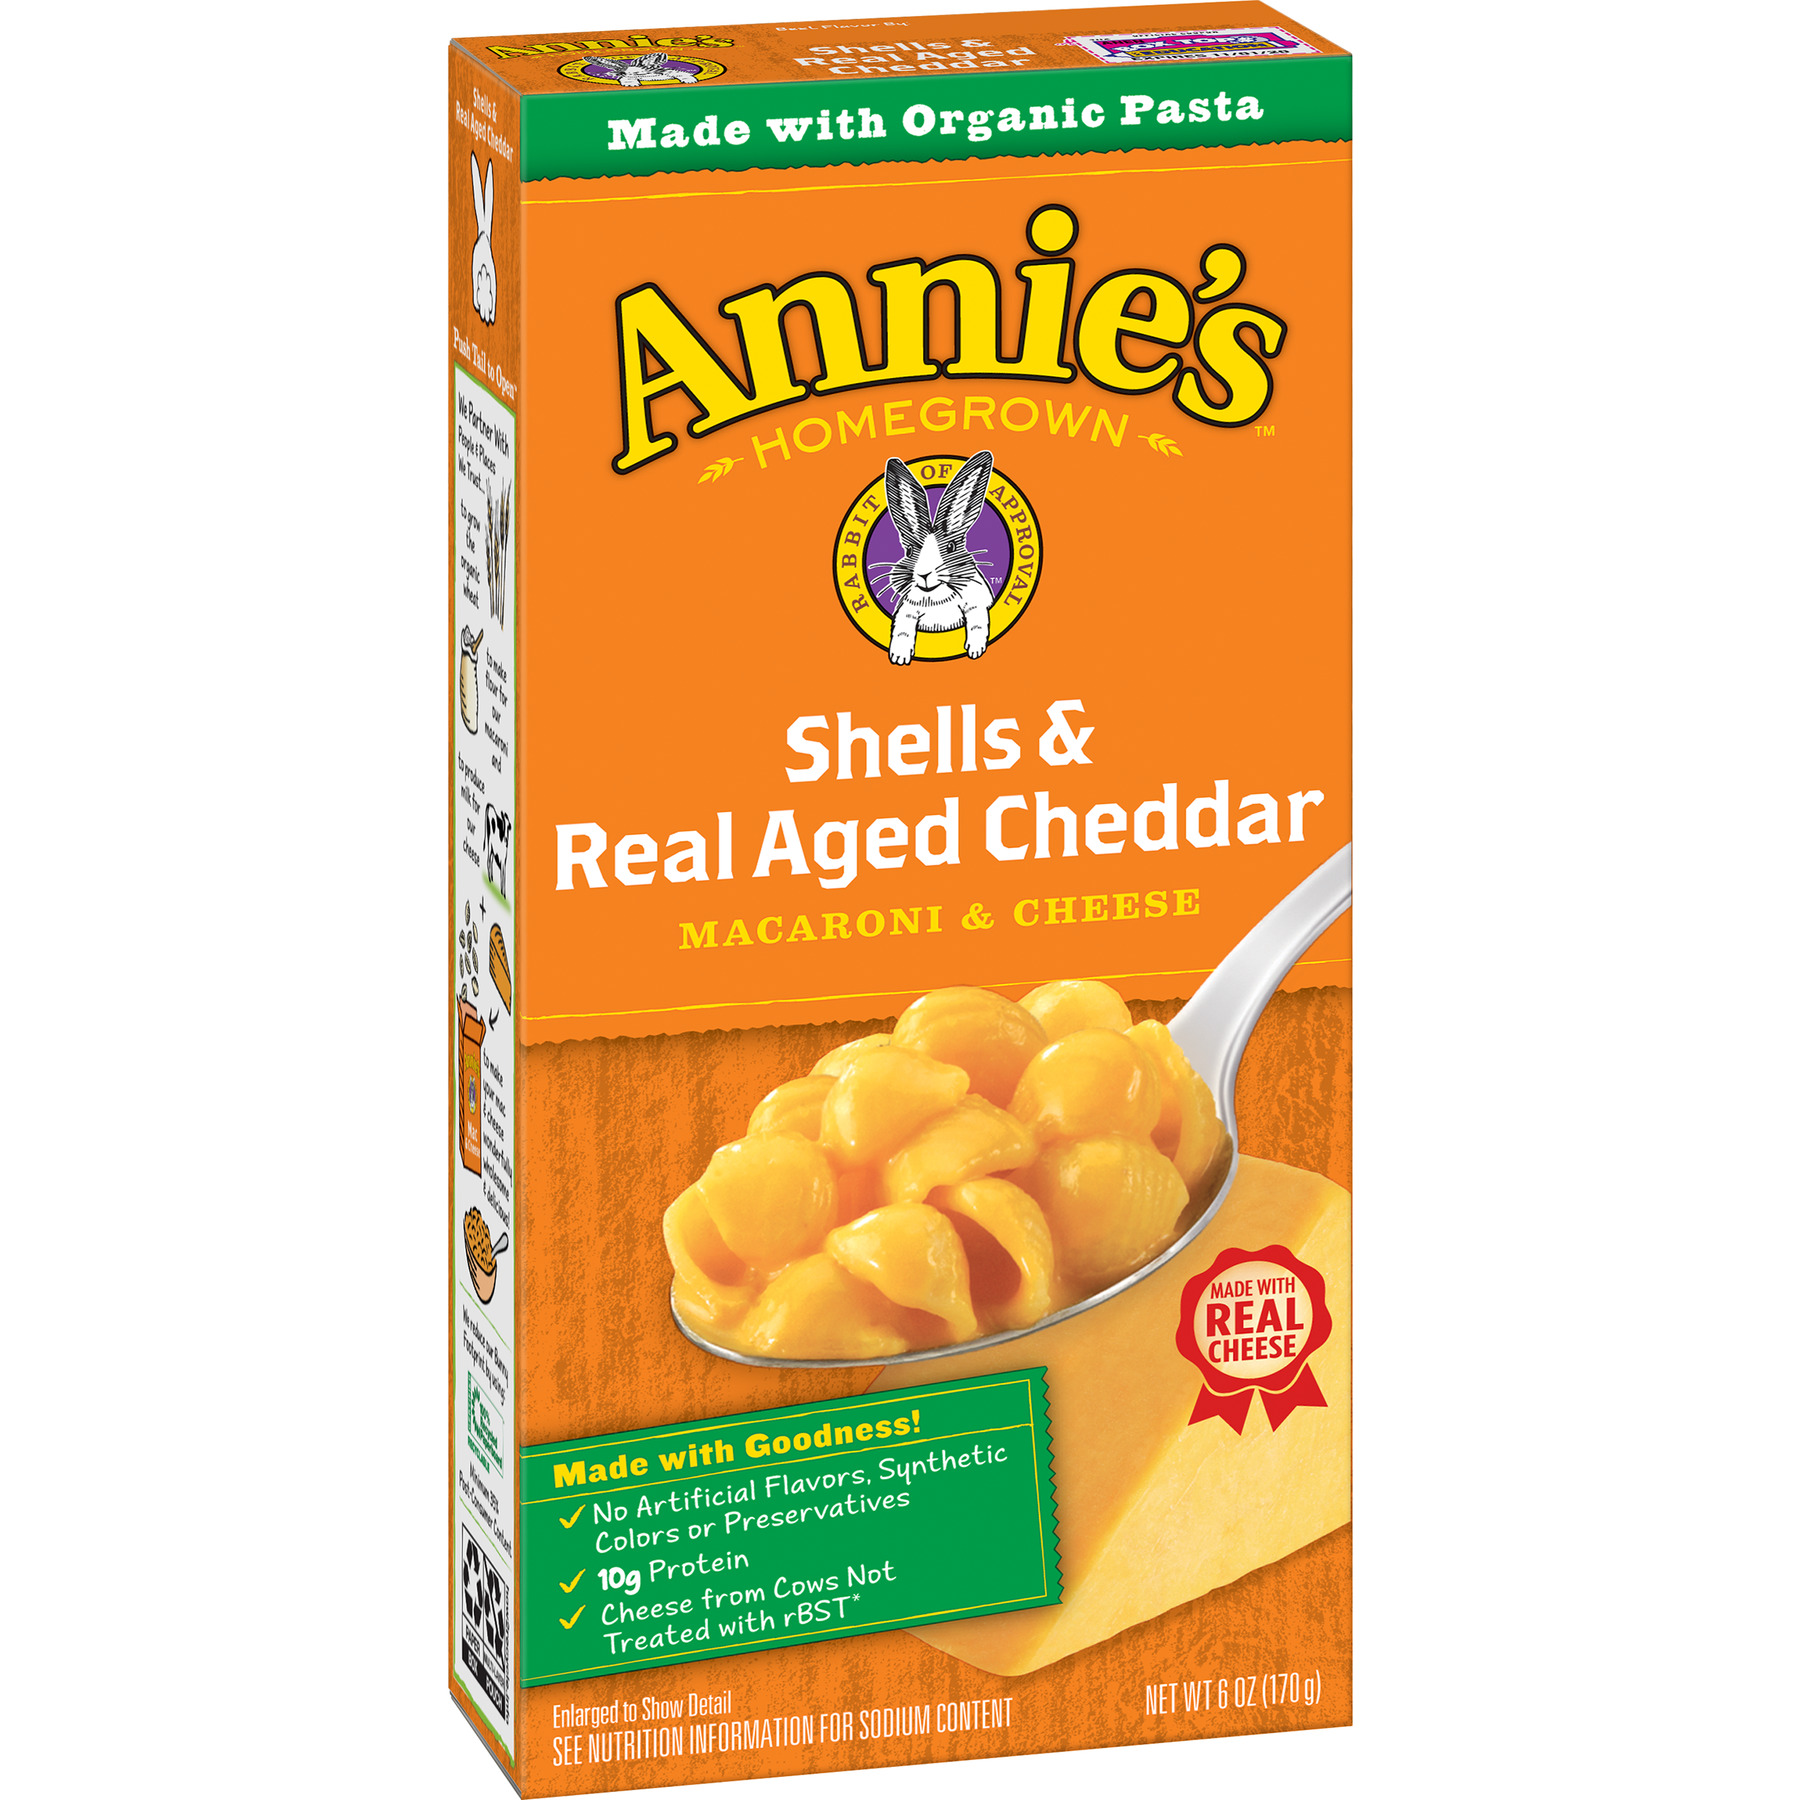 Annie's Macaroni and Cheese Shells & Aged Cheddar Mac and Cheese 6 oz